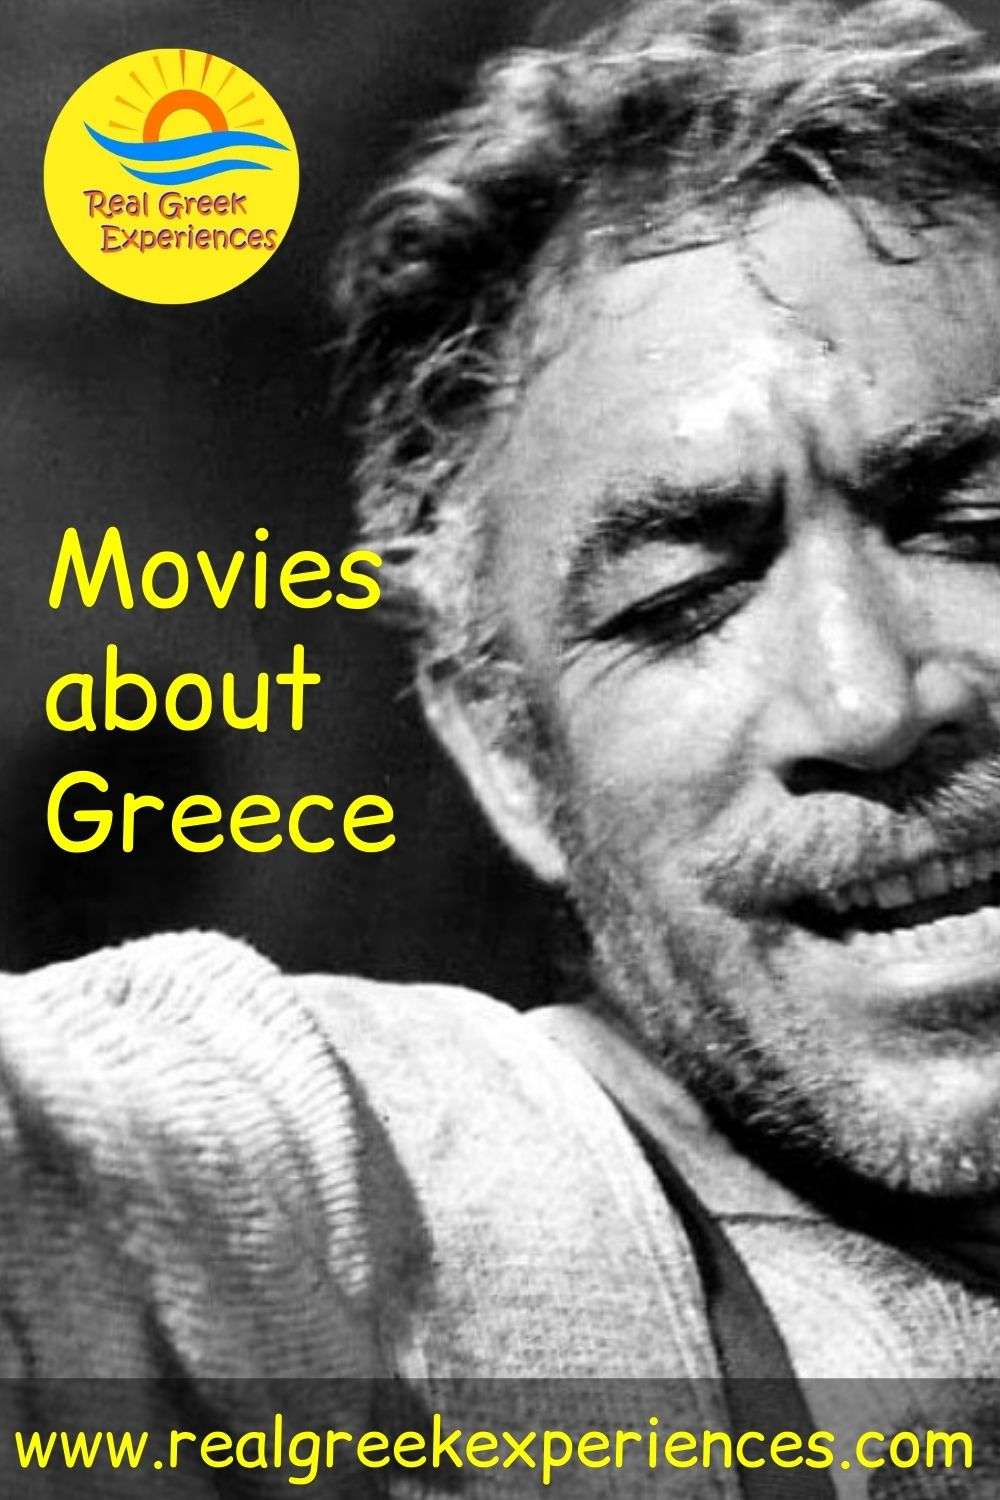 Movies in Greece